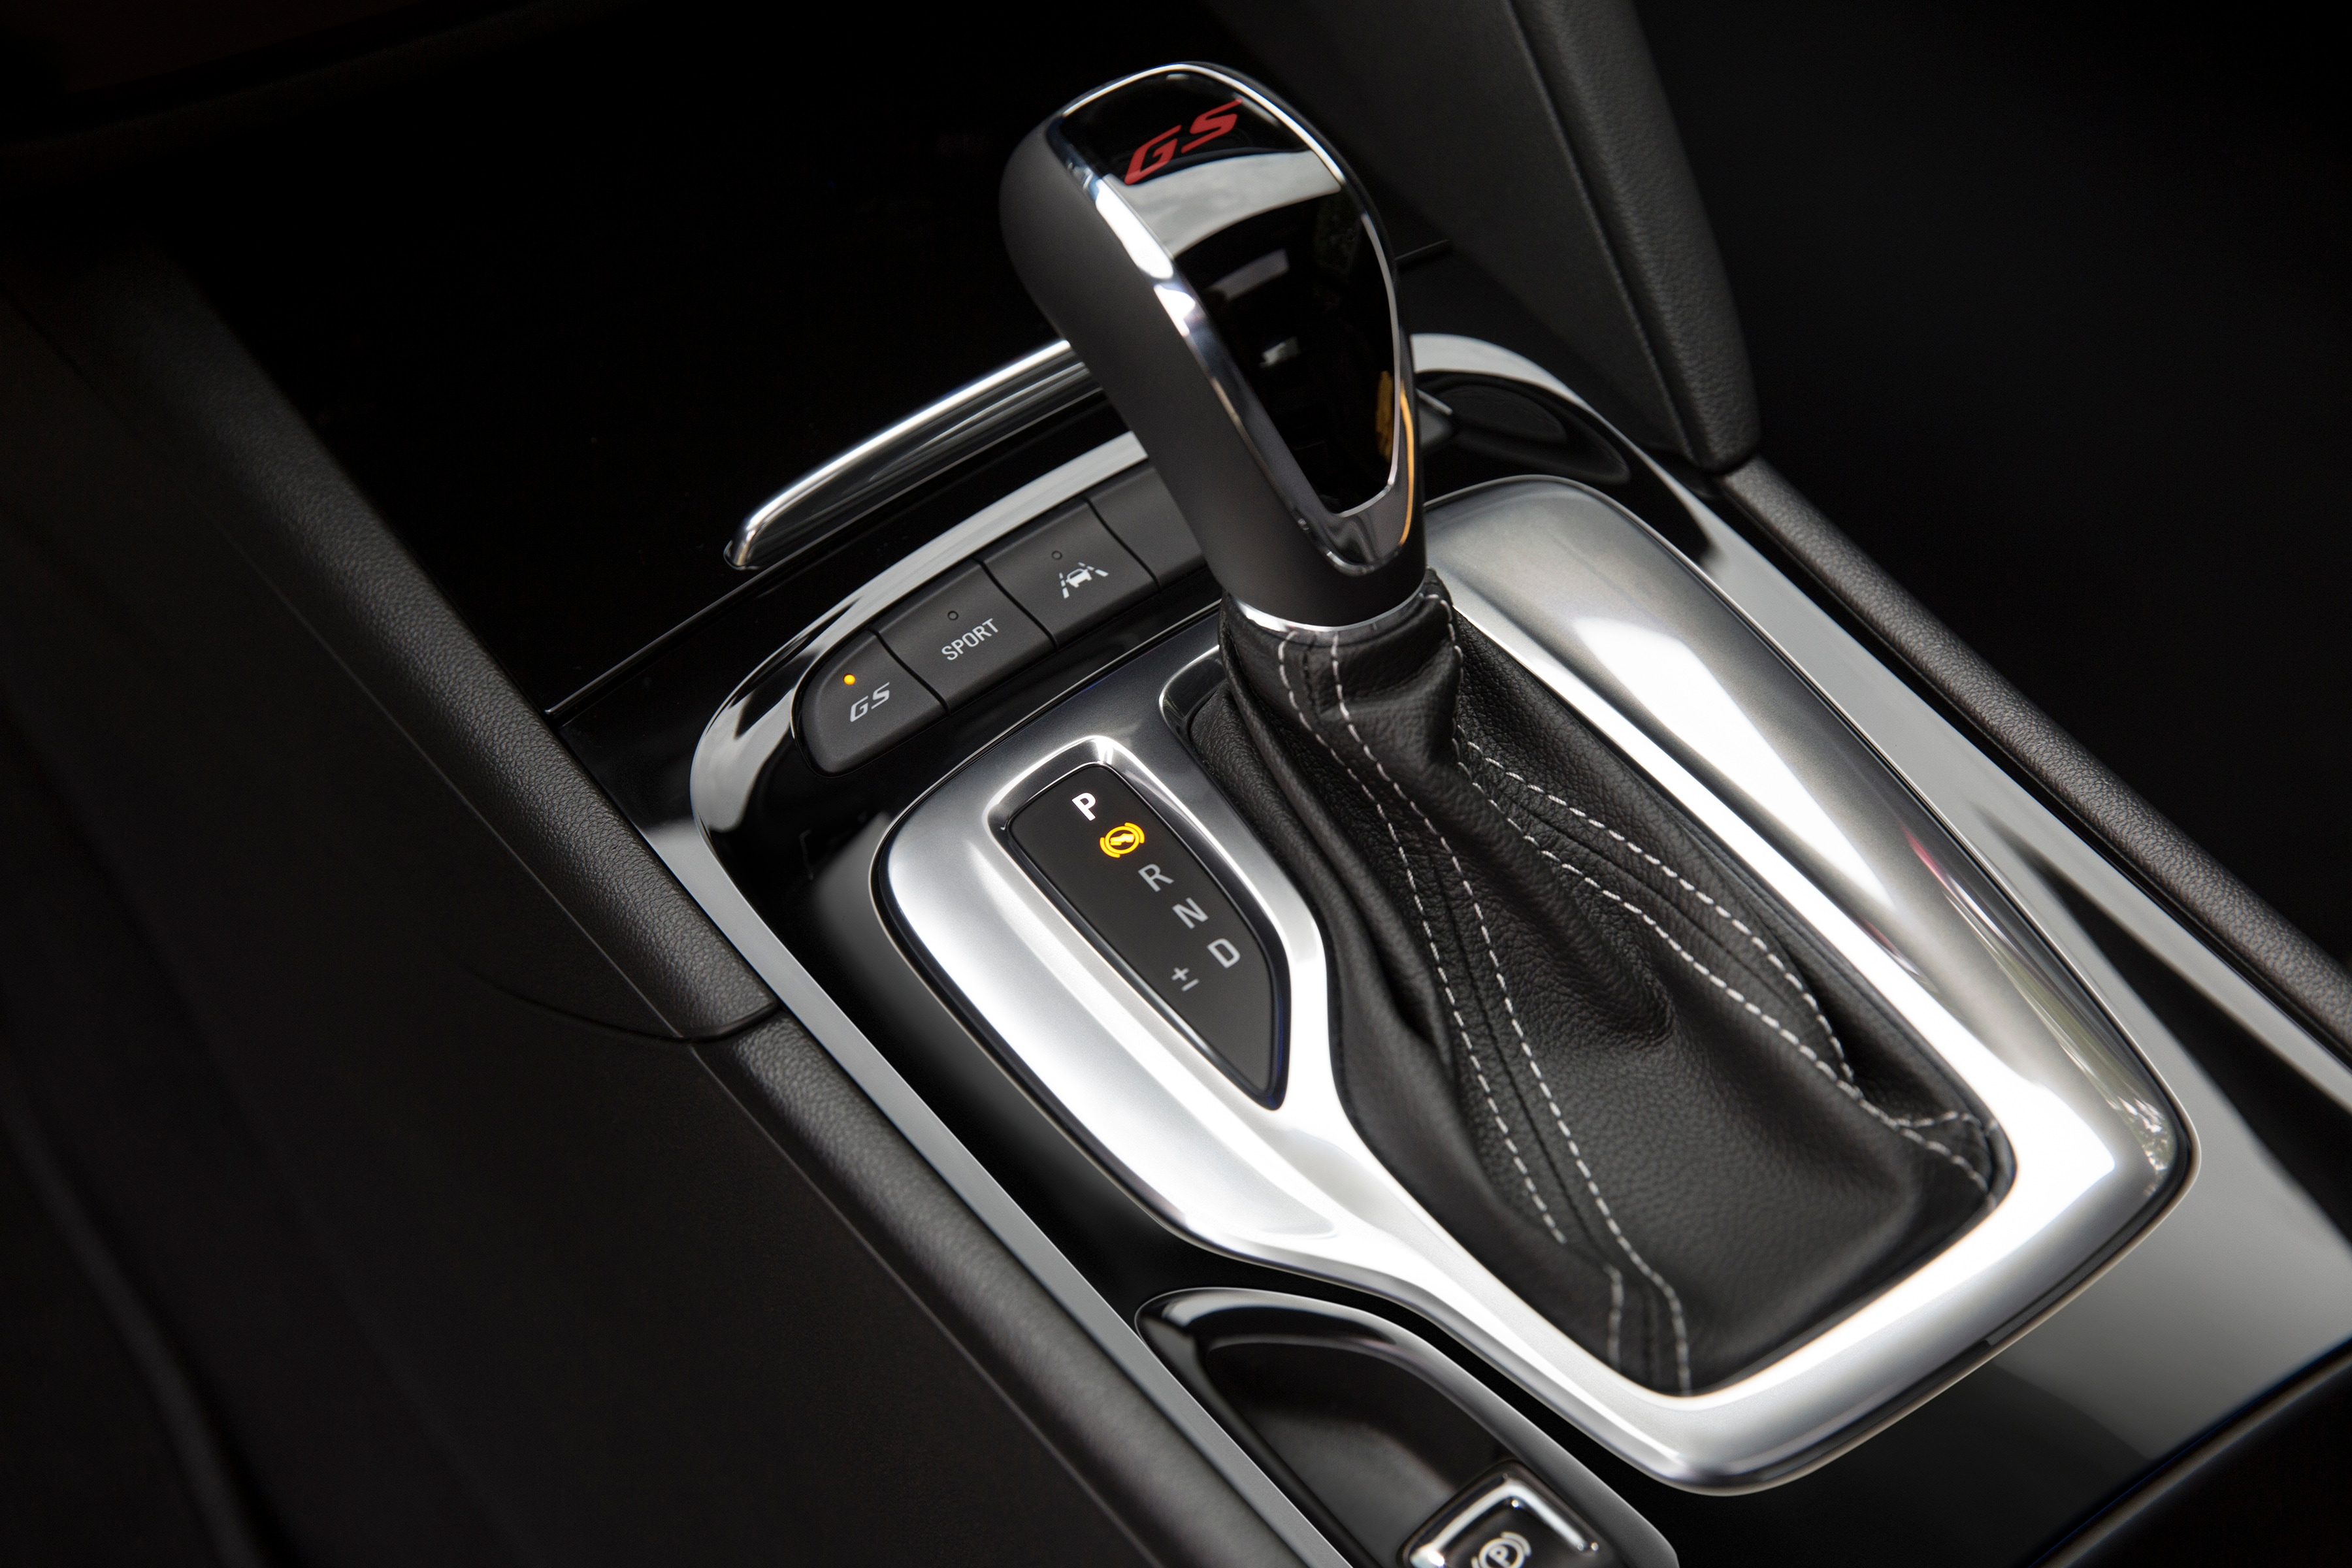 2018 Buick Regal GS gearshift